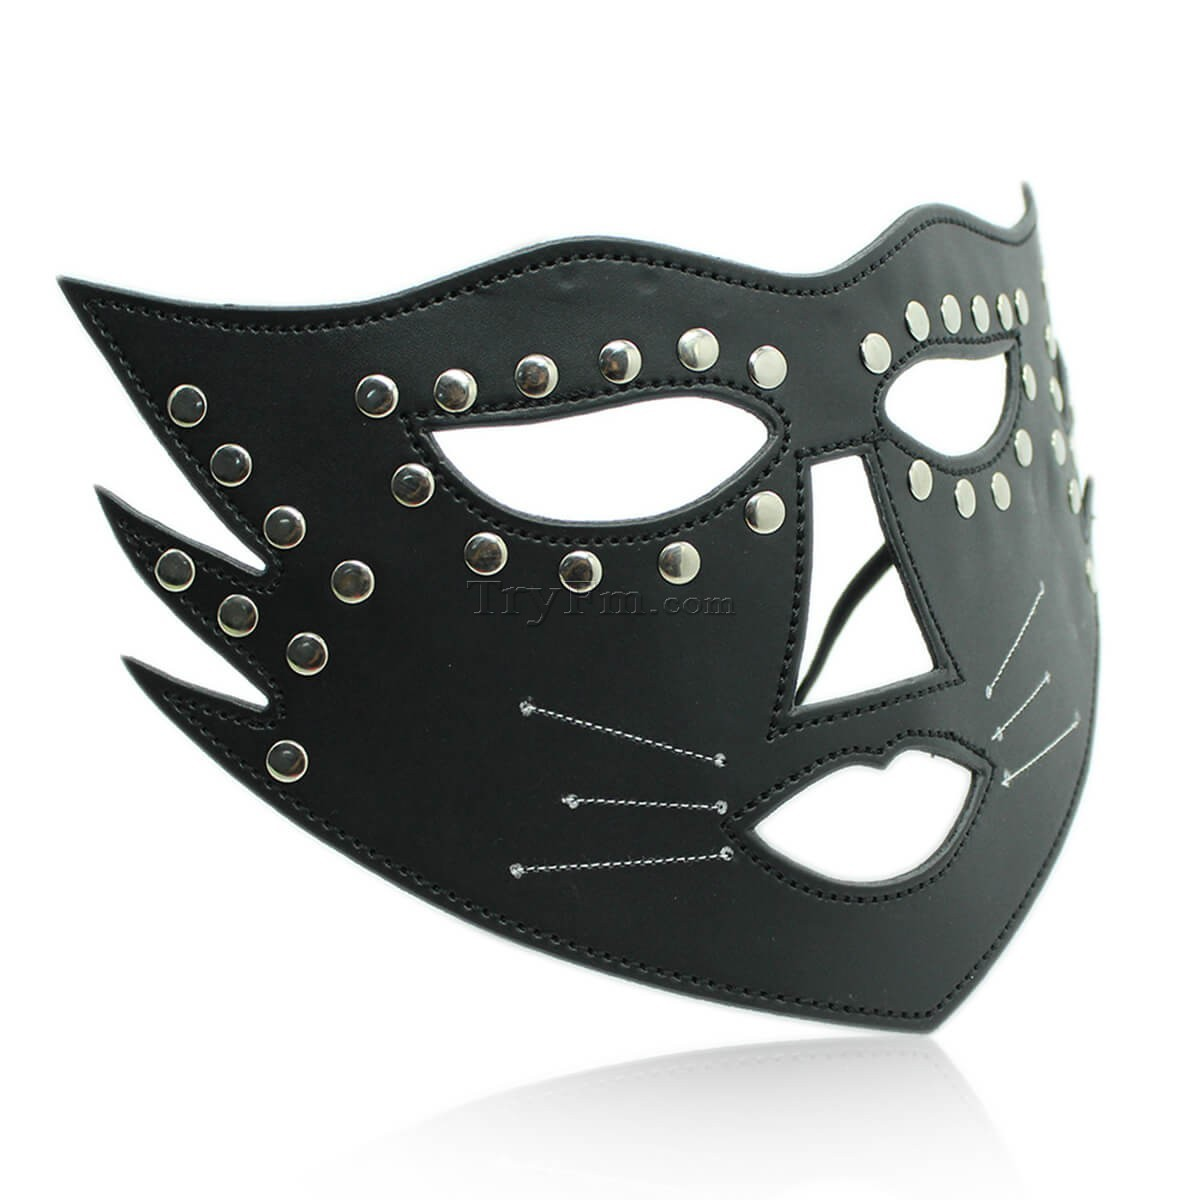 12-cat-face-mask4.jpg